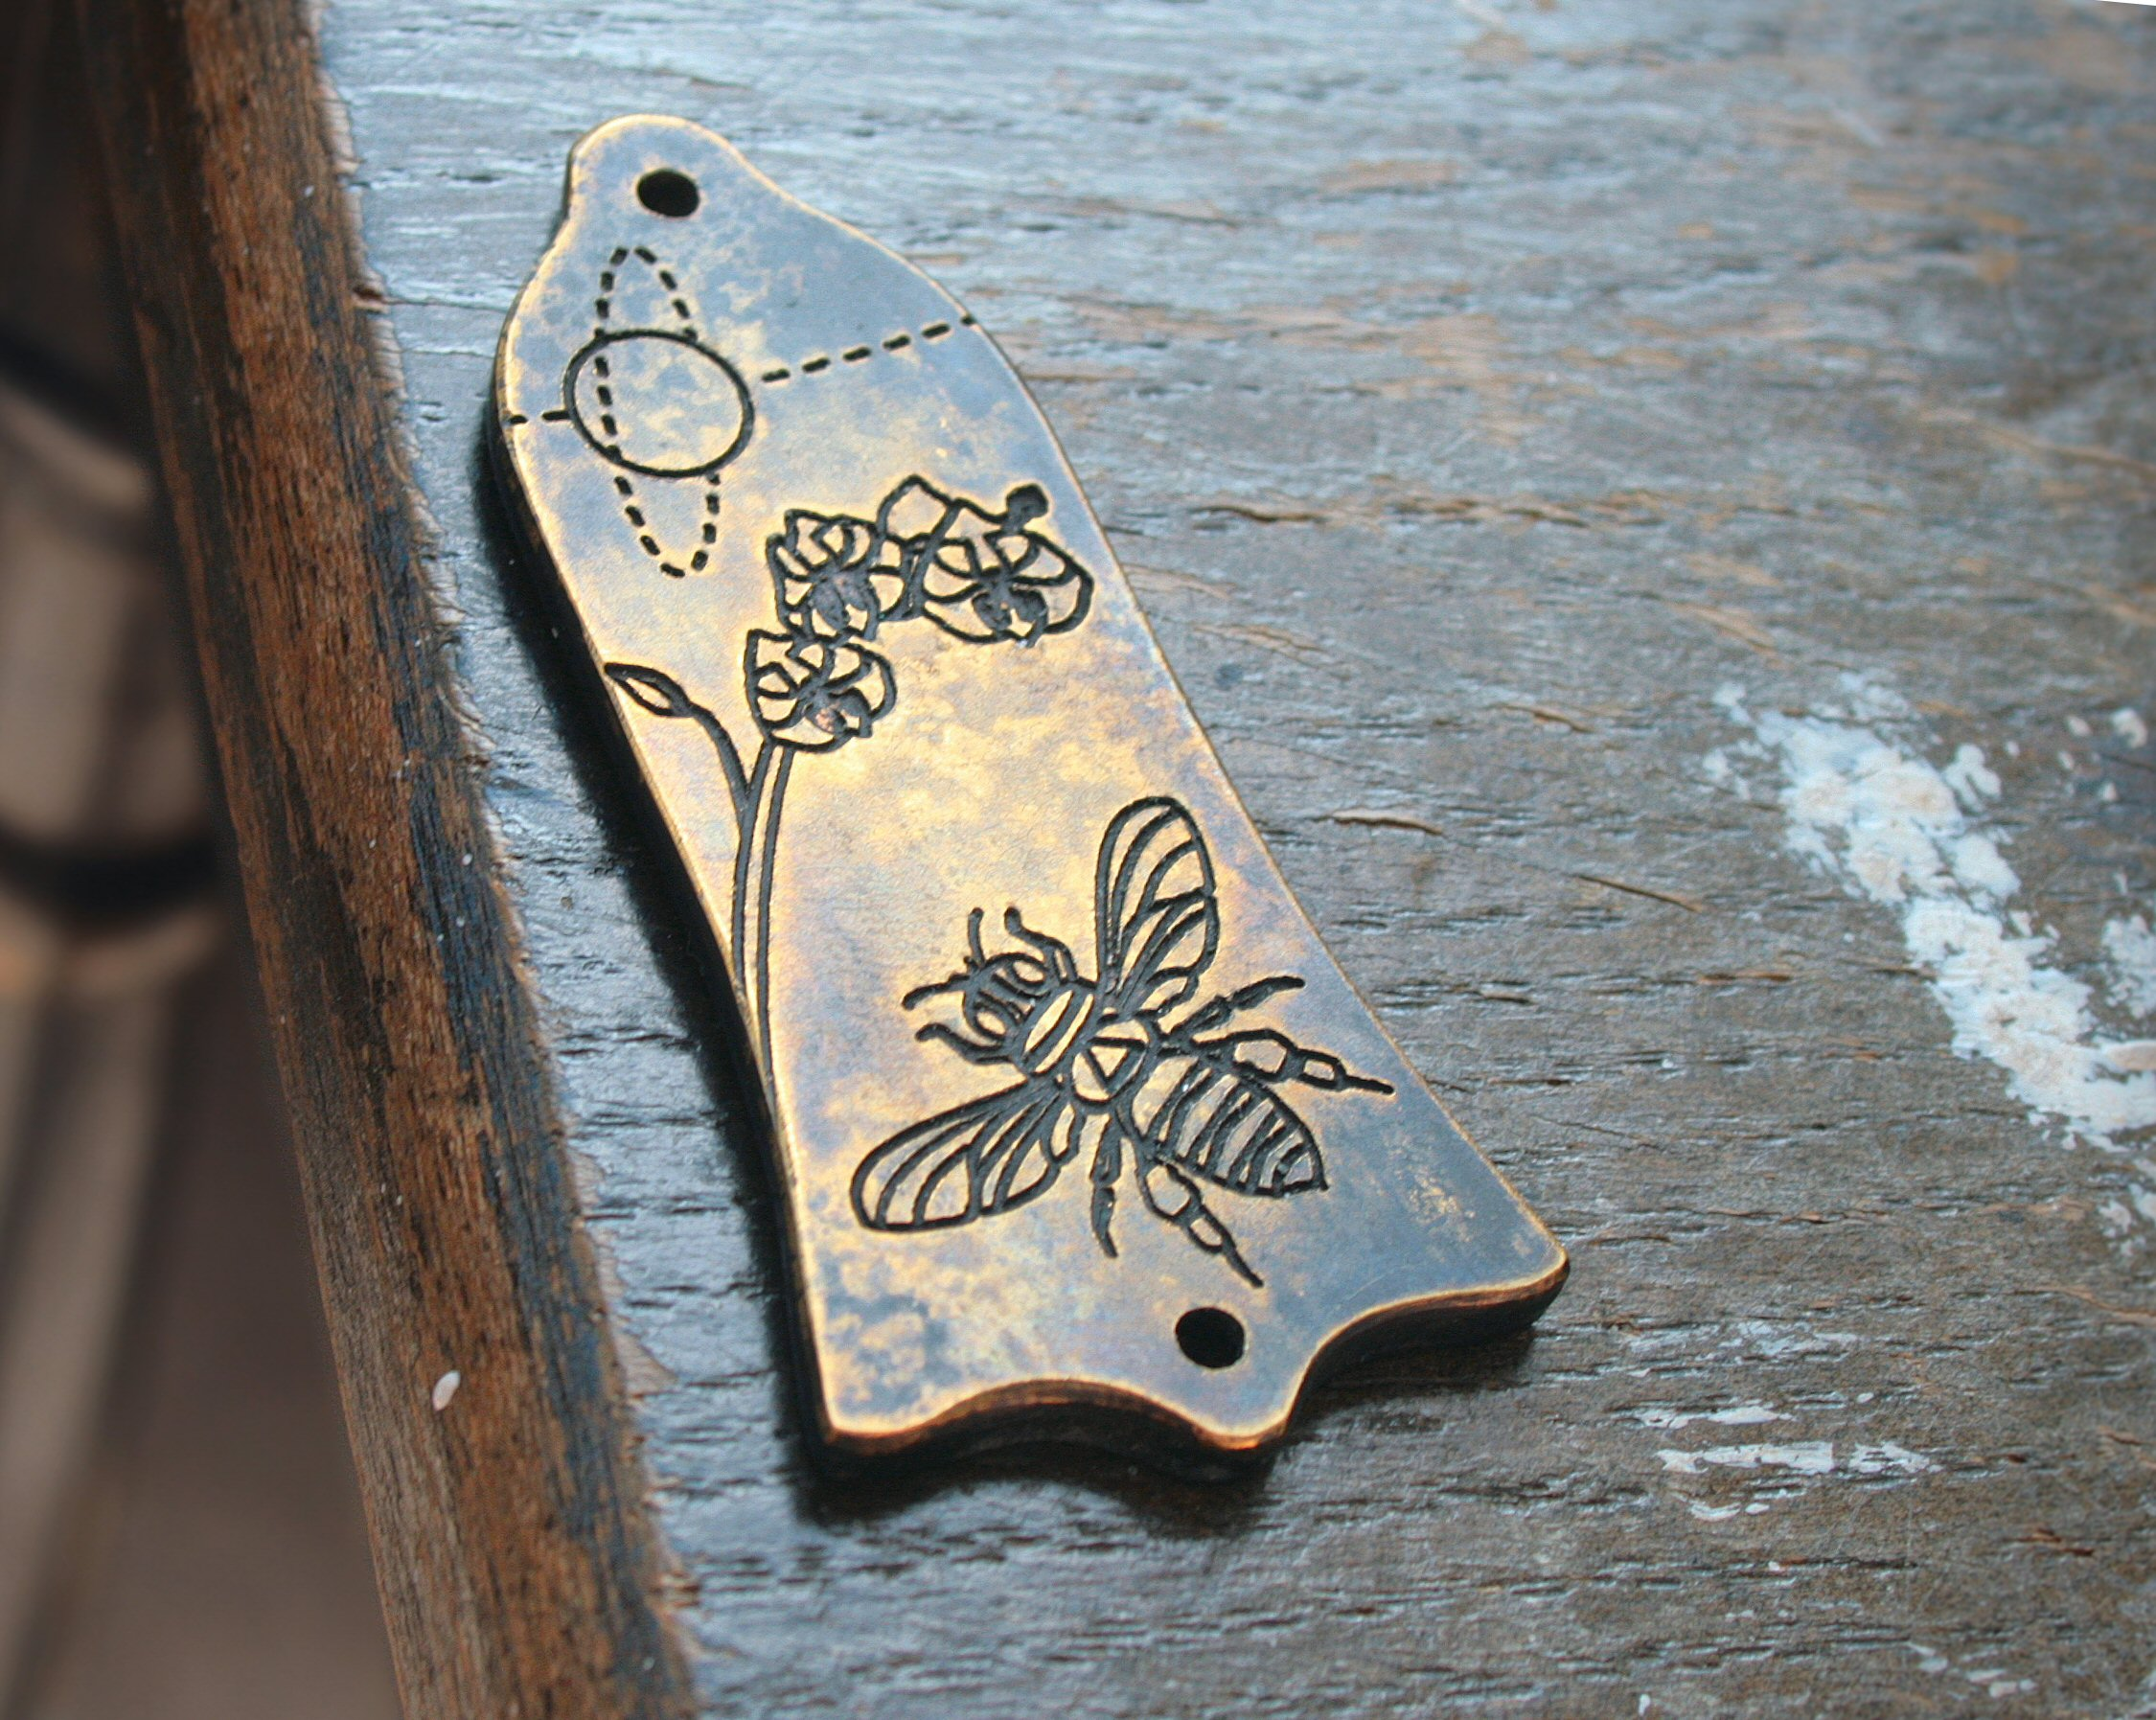 Bee and Orchid truss rod cover